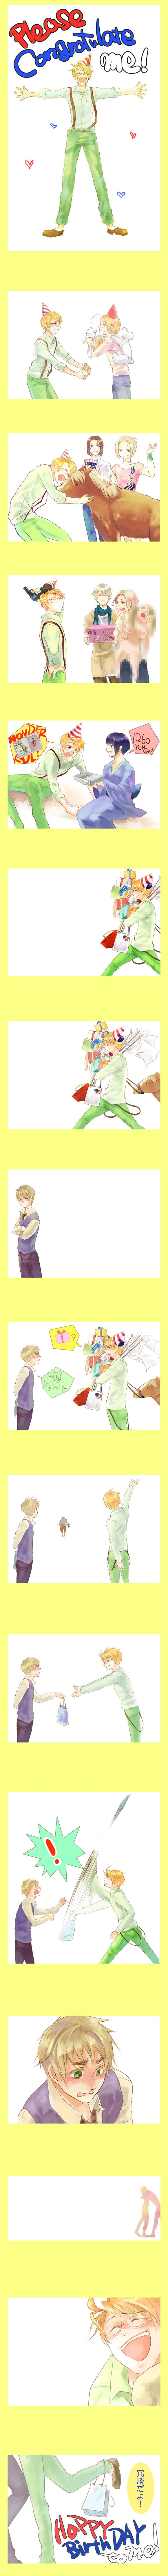 4th of July Party -  こんもり - Hetalia - America / England ...~... What was in the bag from England...?  A photo album. :)